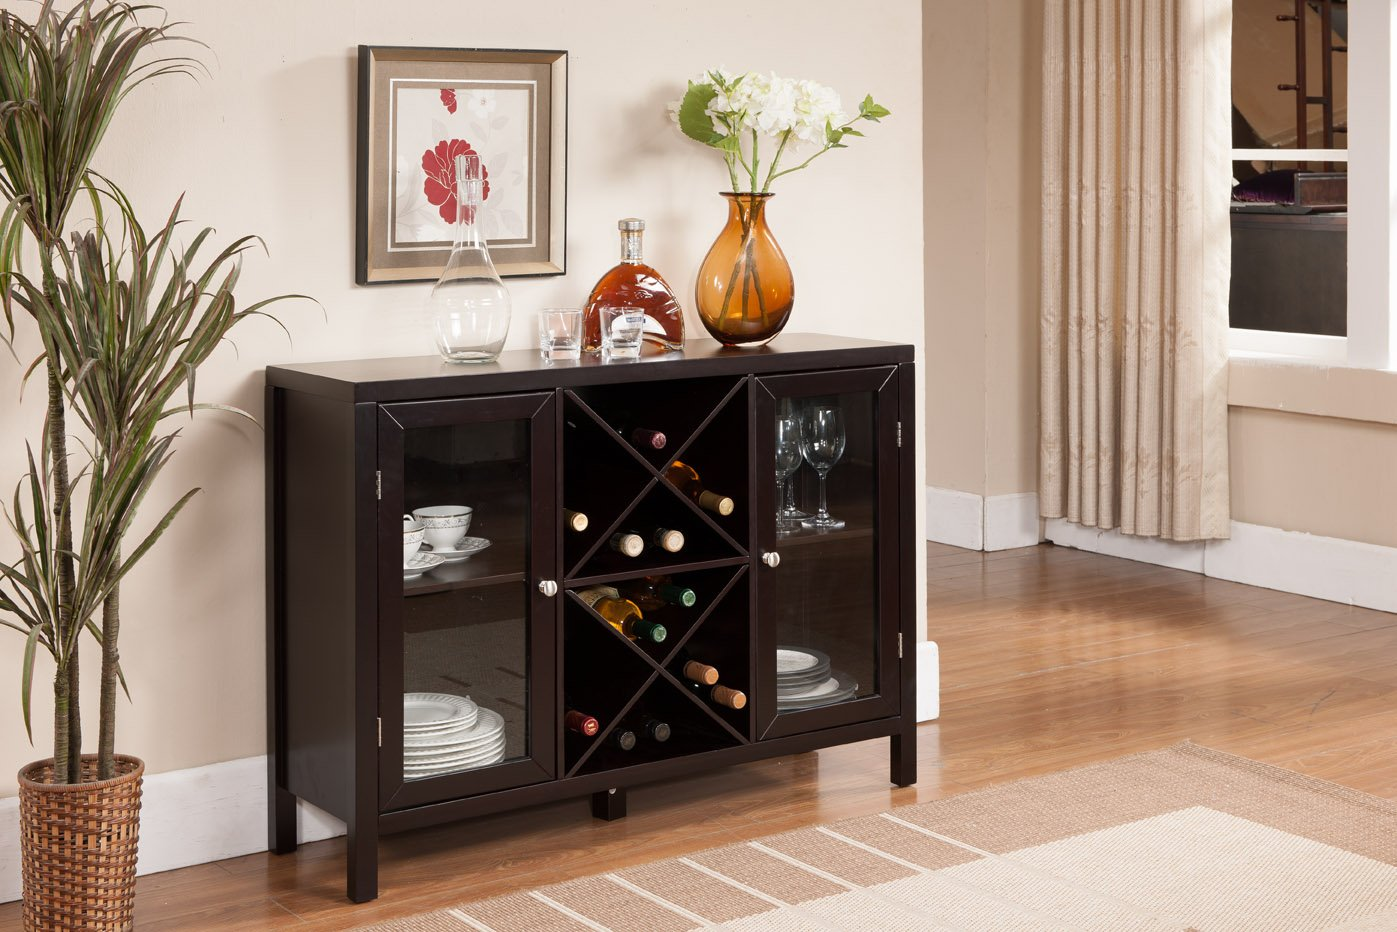 Amazon.com: Kings Brand Furniture Wood Wine Rack Console Sideboard Table  With Storage, Espresso: Kitchen U0026 Dining